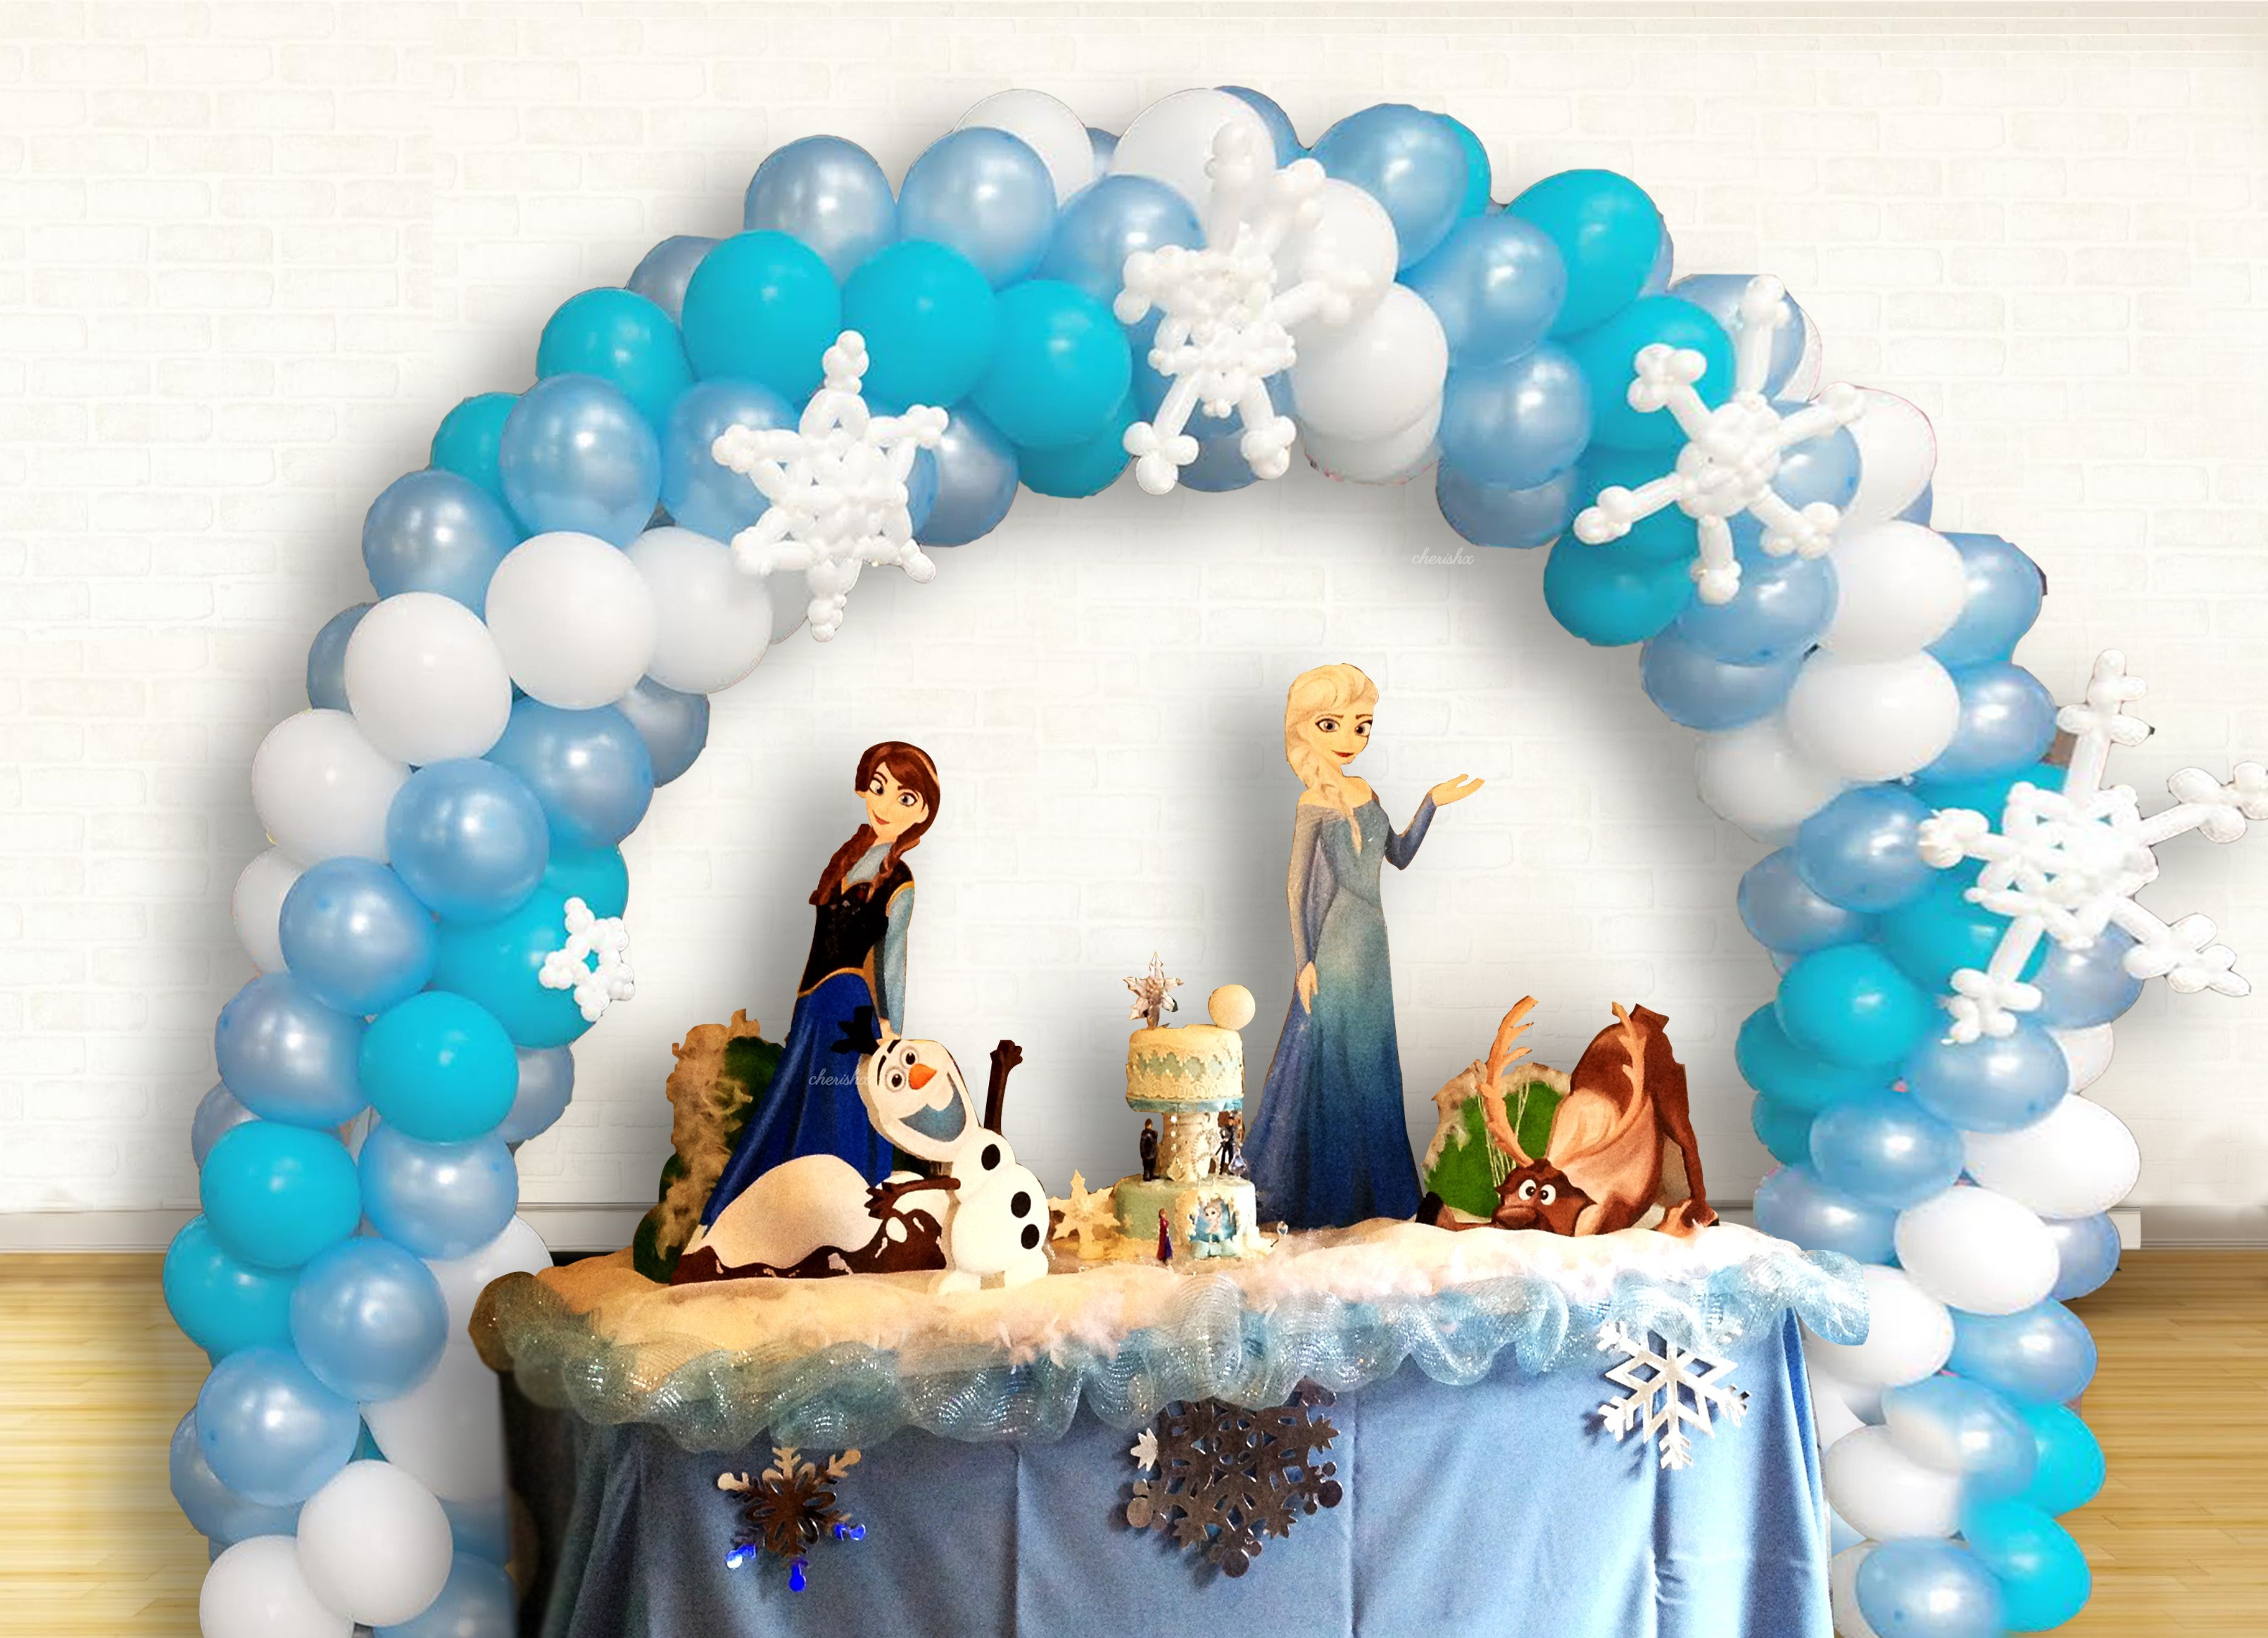 Elsa Frozen Birthday Theme Balloon Decoration At Home For Kids In